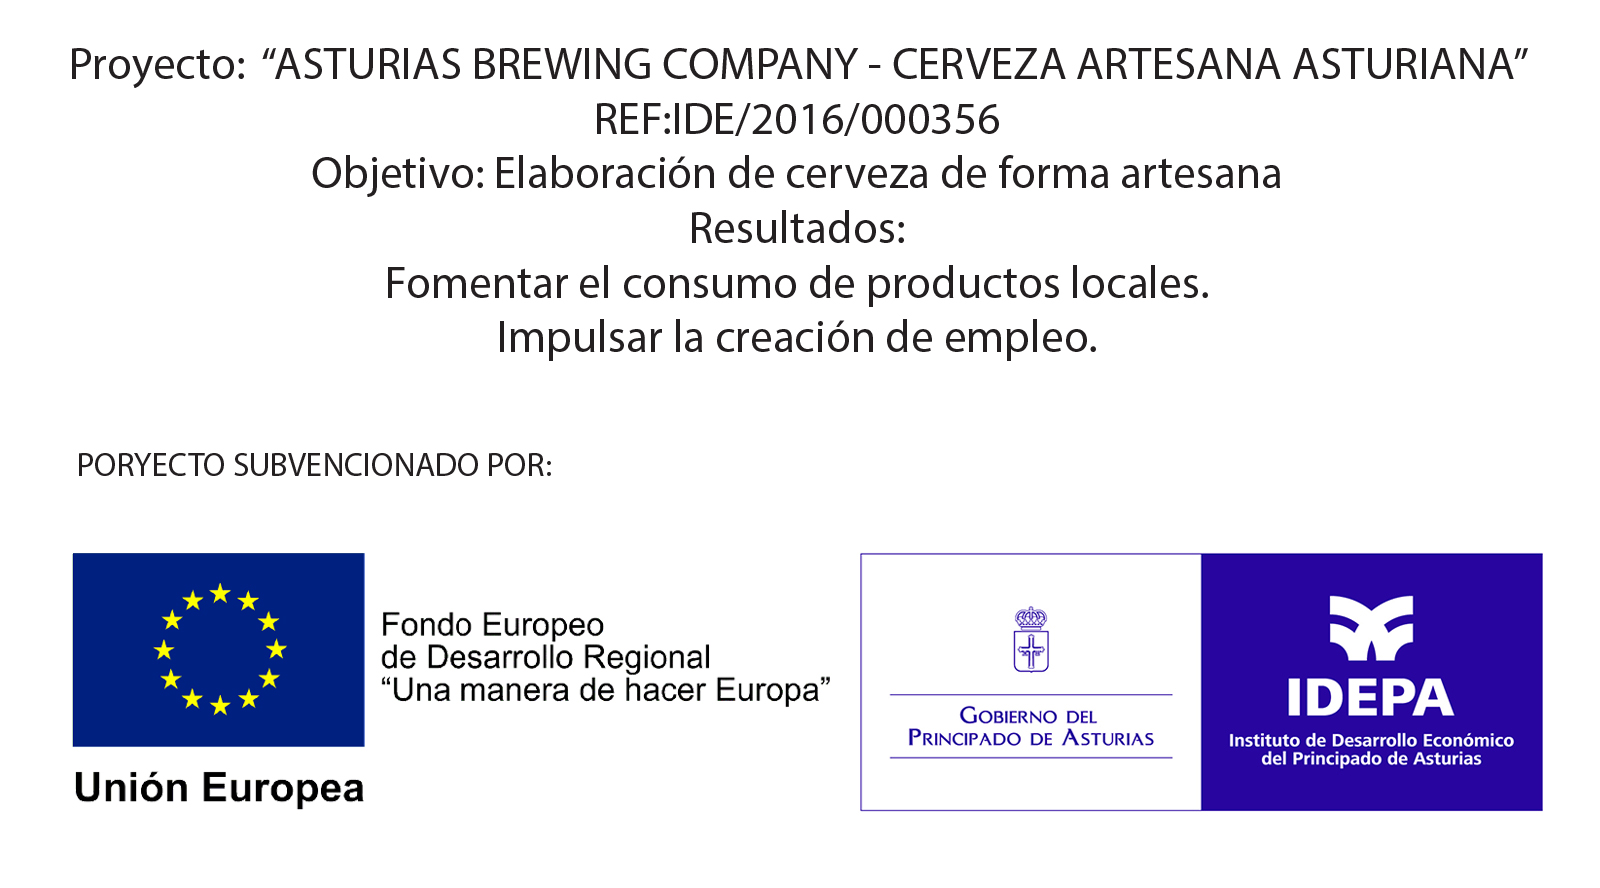 https://asturiasbrewingcompany.com/wp-content/uploads/2018/12/SUBVENCION-ABC.jpg